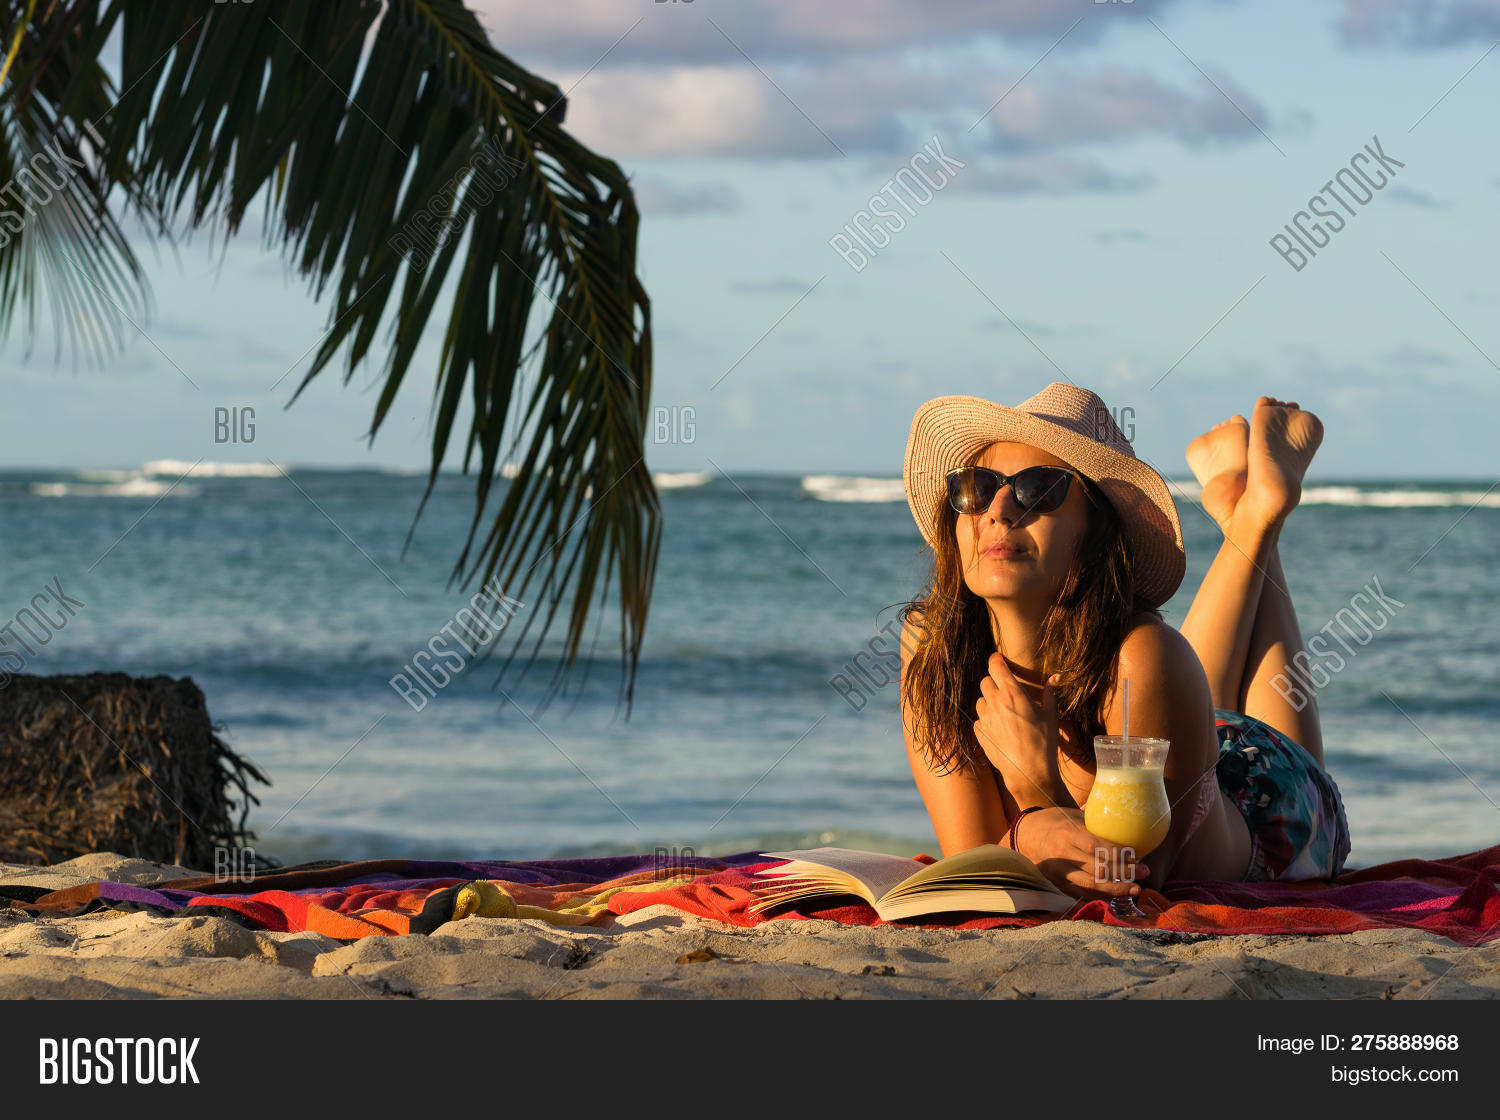 alone,attractive,background,beach,beautiful,beauty,book,chilling,cocktail,daylight,dreamlike,ecology,enjoyment,environment,freedom,fresh,girl,holidays,hot,idyllic,landscape,light,loneliness,lonely,luxuriant,natural,nature,nobody,ocean,outdoor,portrait,relaxation,rural,shore,sky,solitary,solitude,summer,sunlight,sunrise,tourism,travel,traveler,tropical,tropics,turquoise,vacation,warm,woman,zen